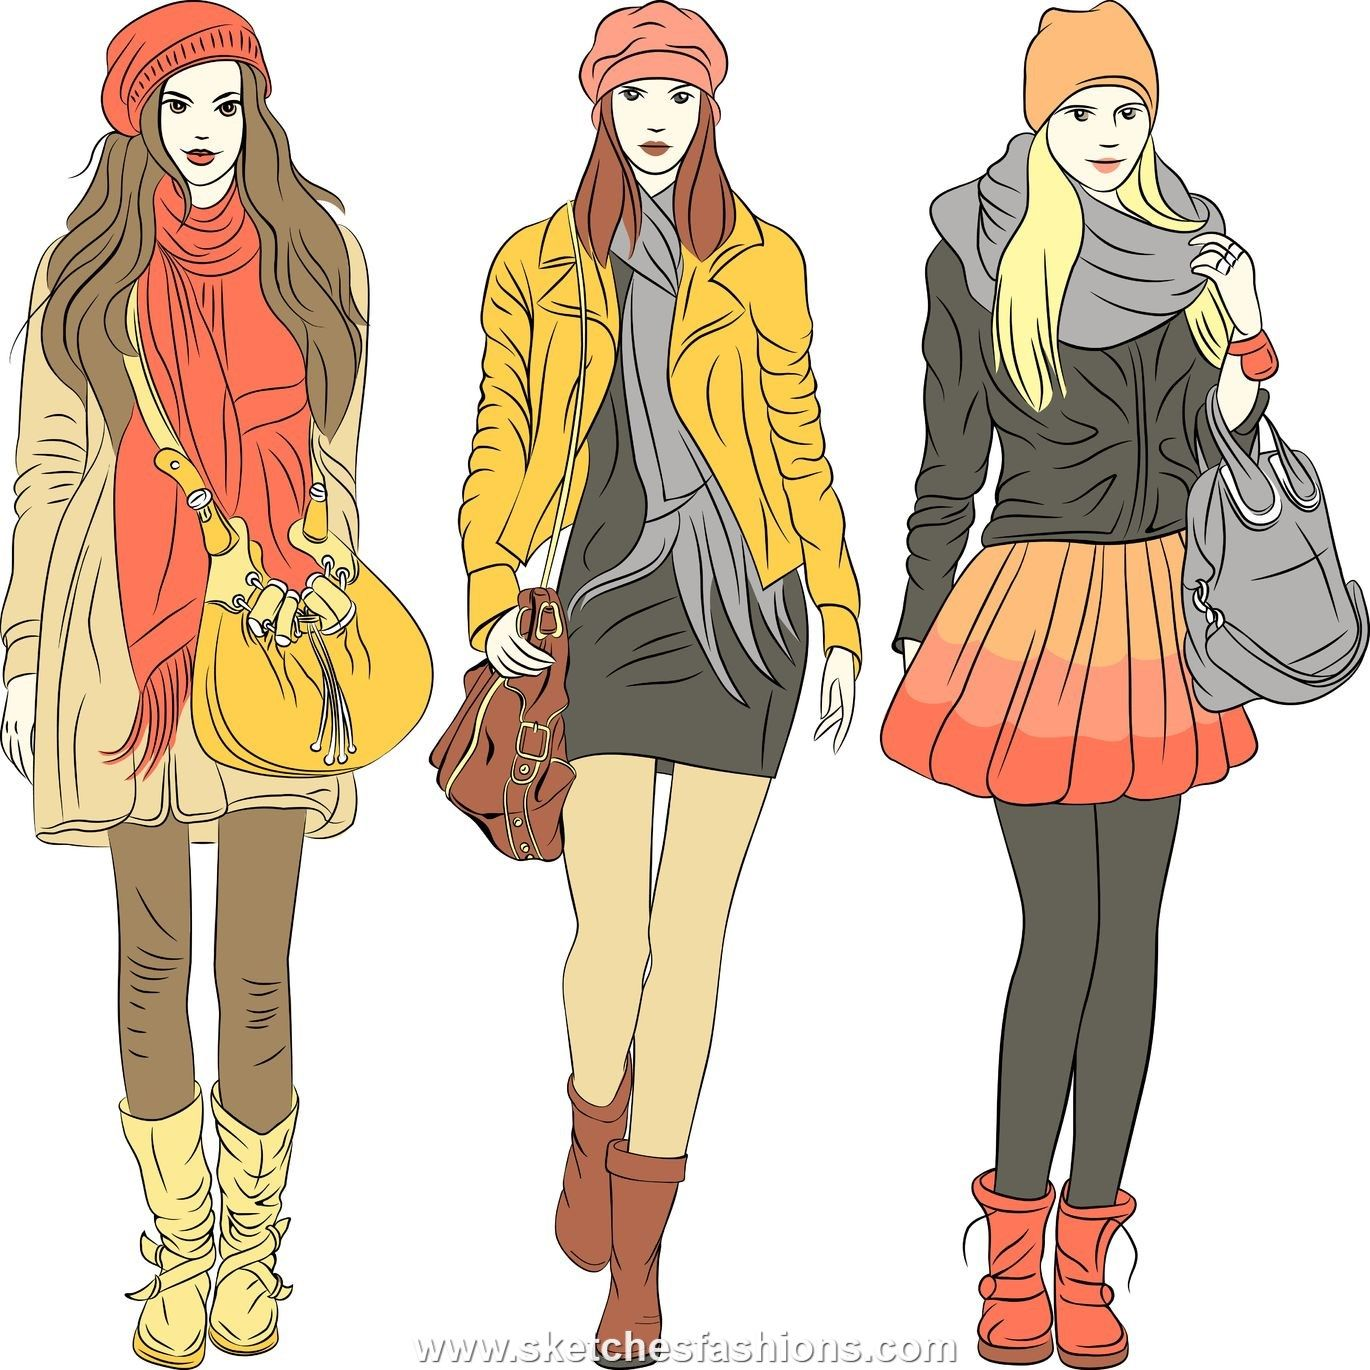 Female Winter Fashion Illustration Sketch The Rainbow Pinterest Fashion Illustrations